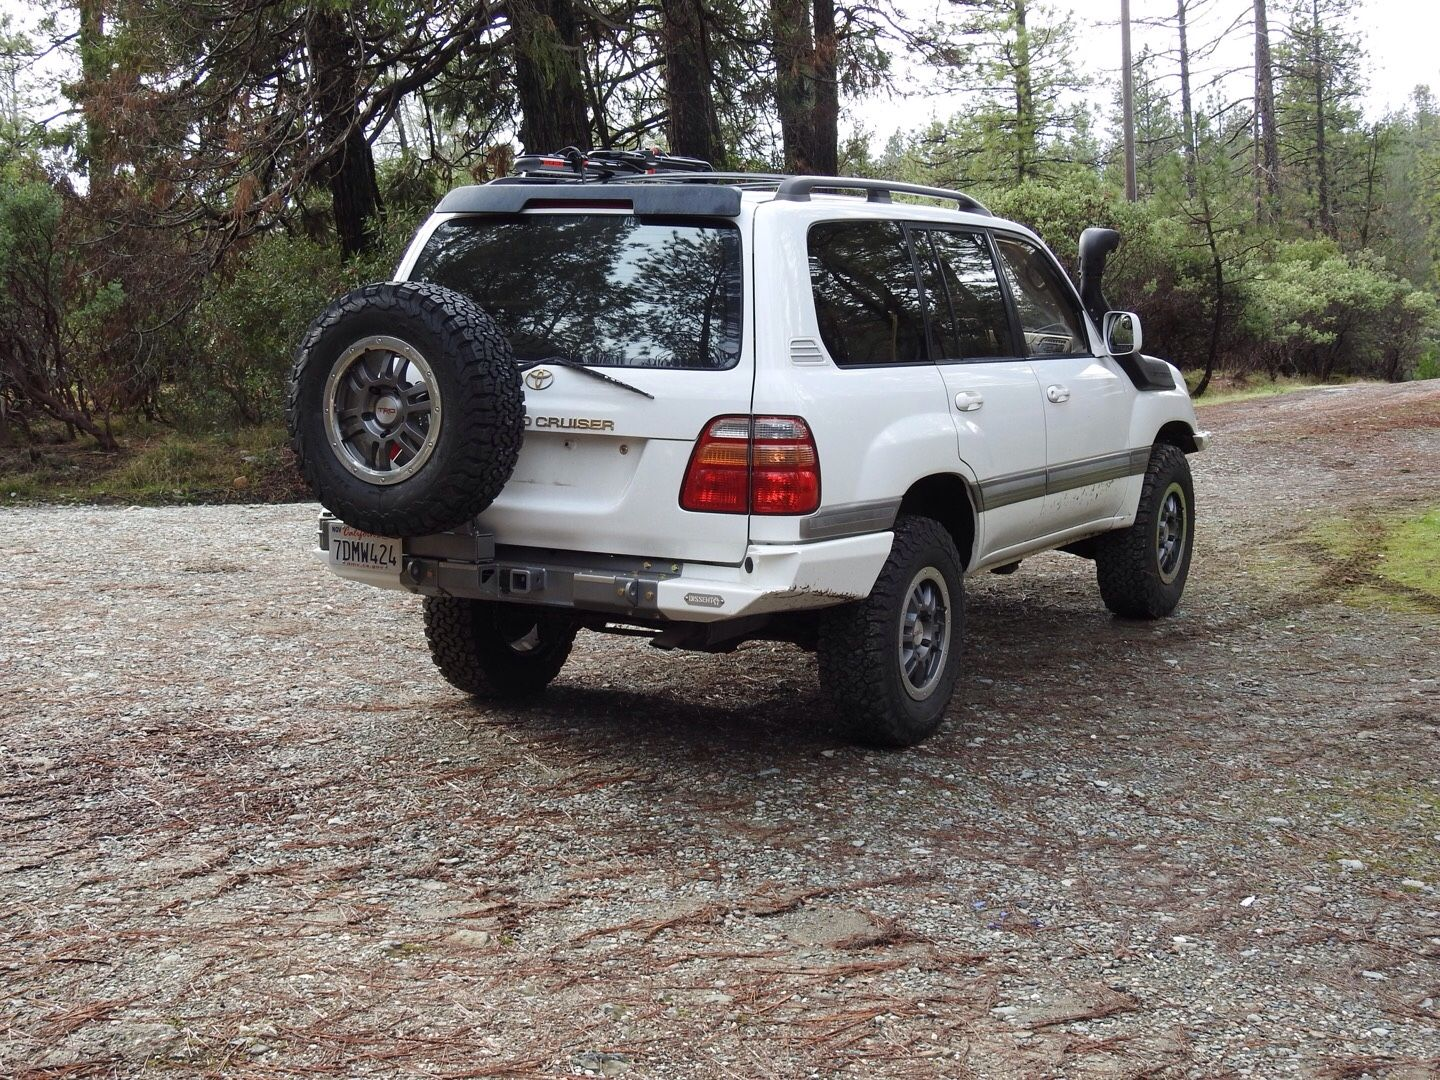 Dissent Offroad 100 Series Build Expedition Portal Expedition Portal Land Cruiser The 100